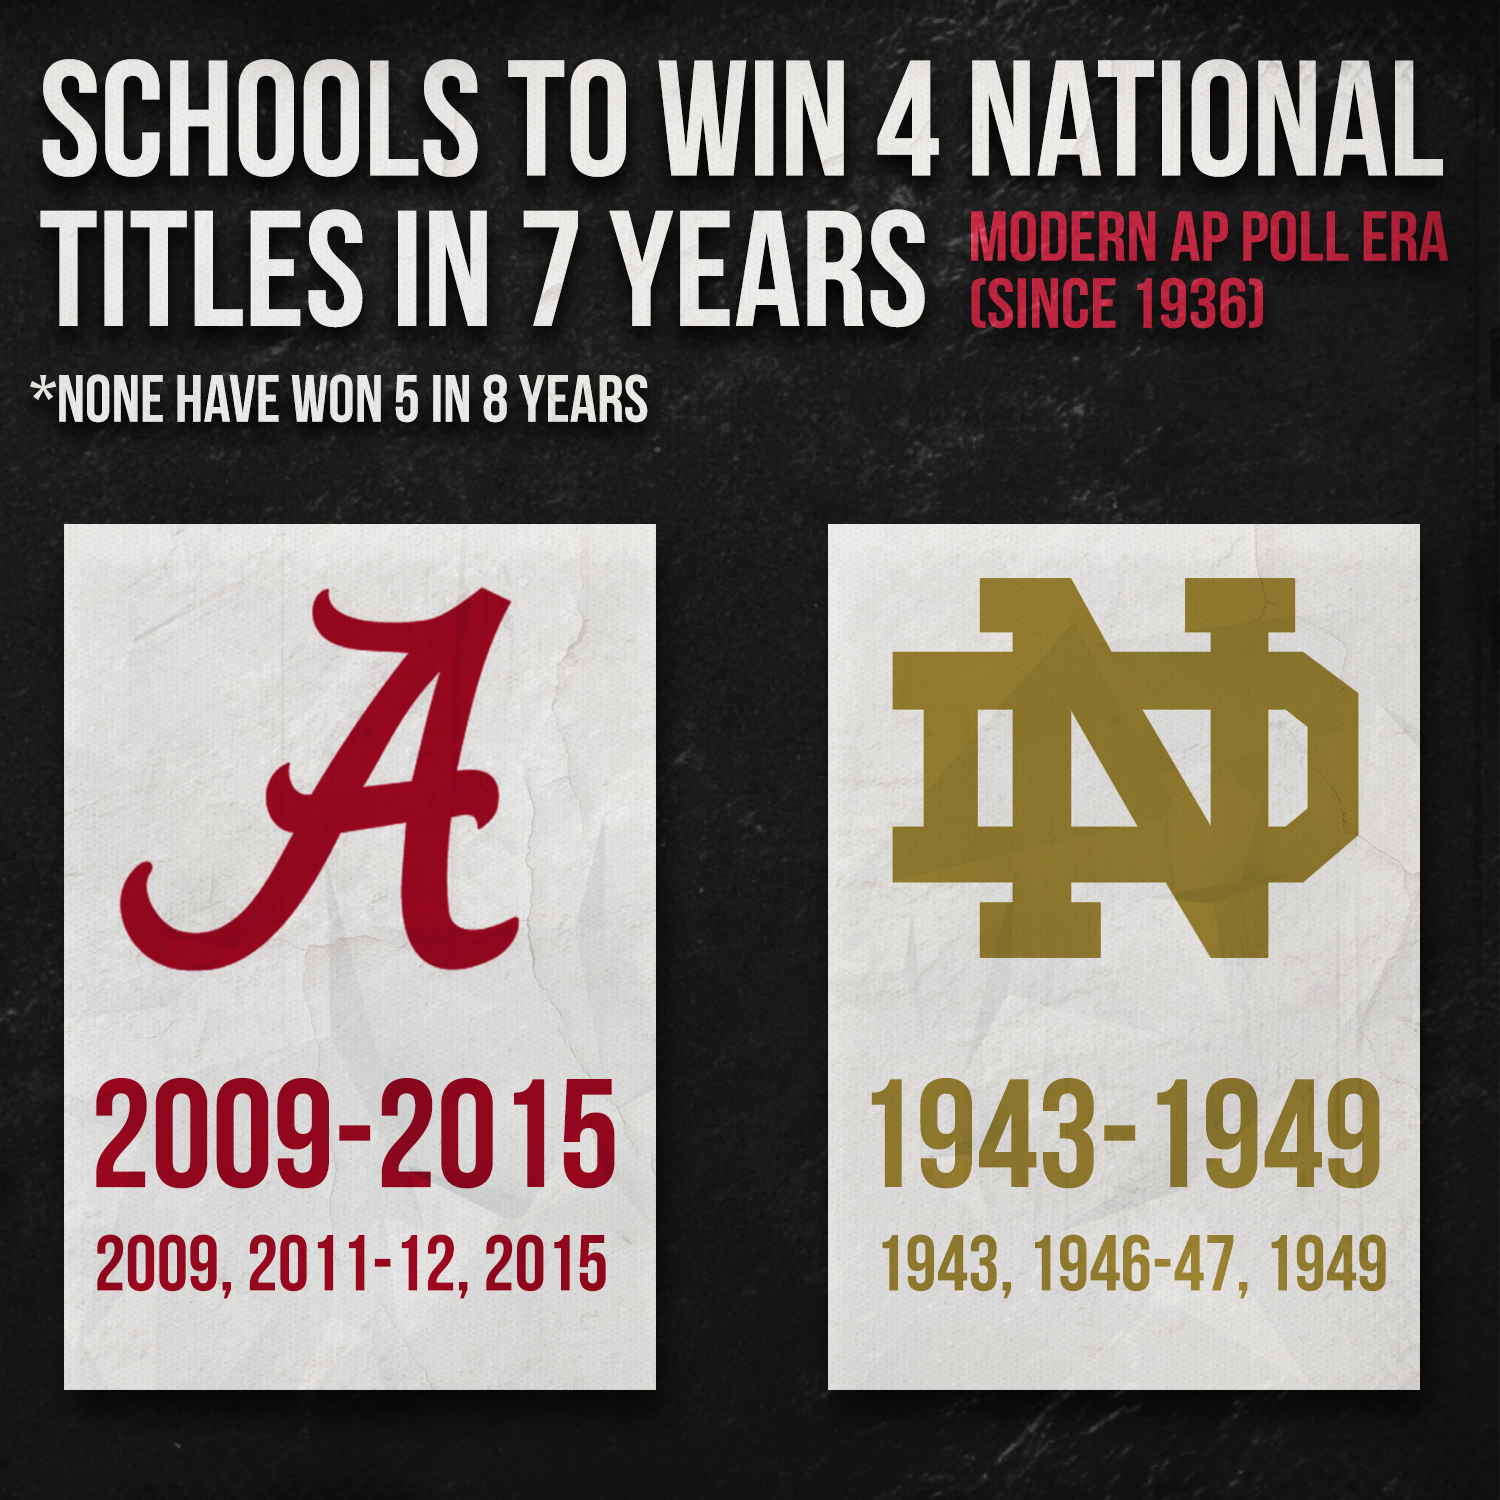 schools-to-win-4-titles-in-7-years